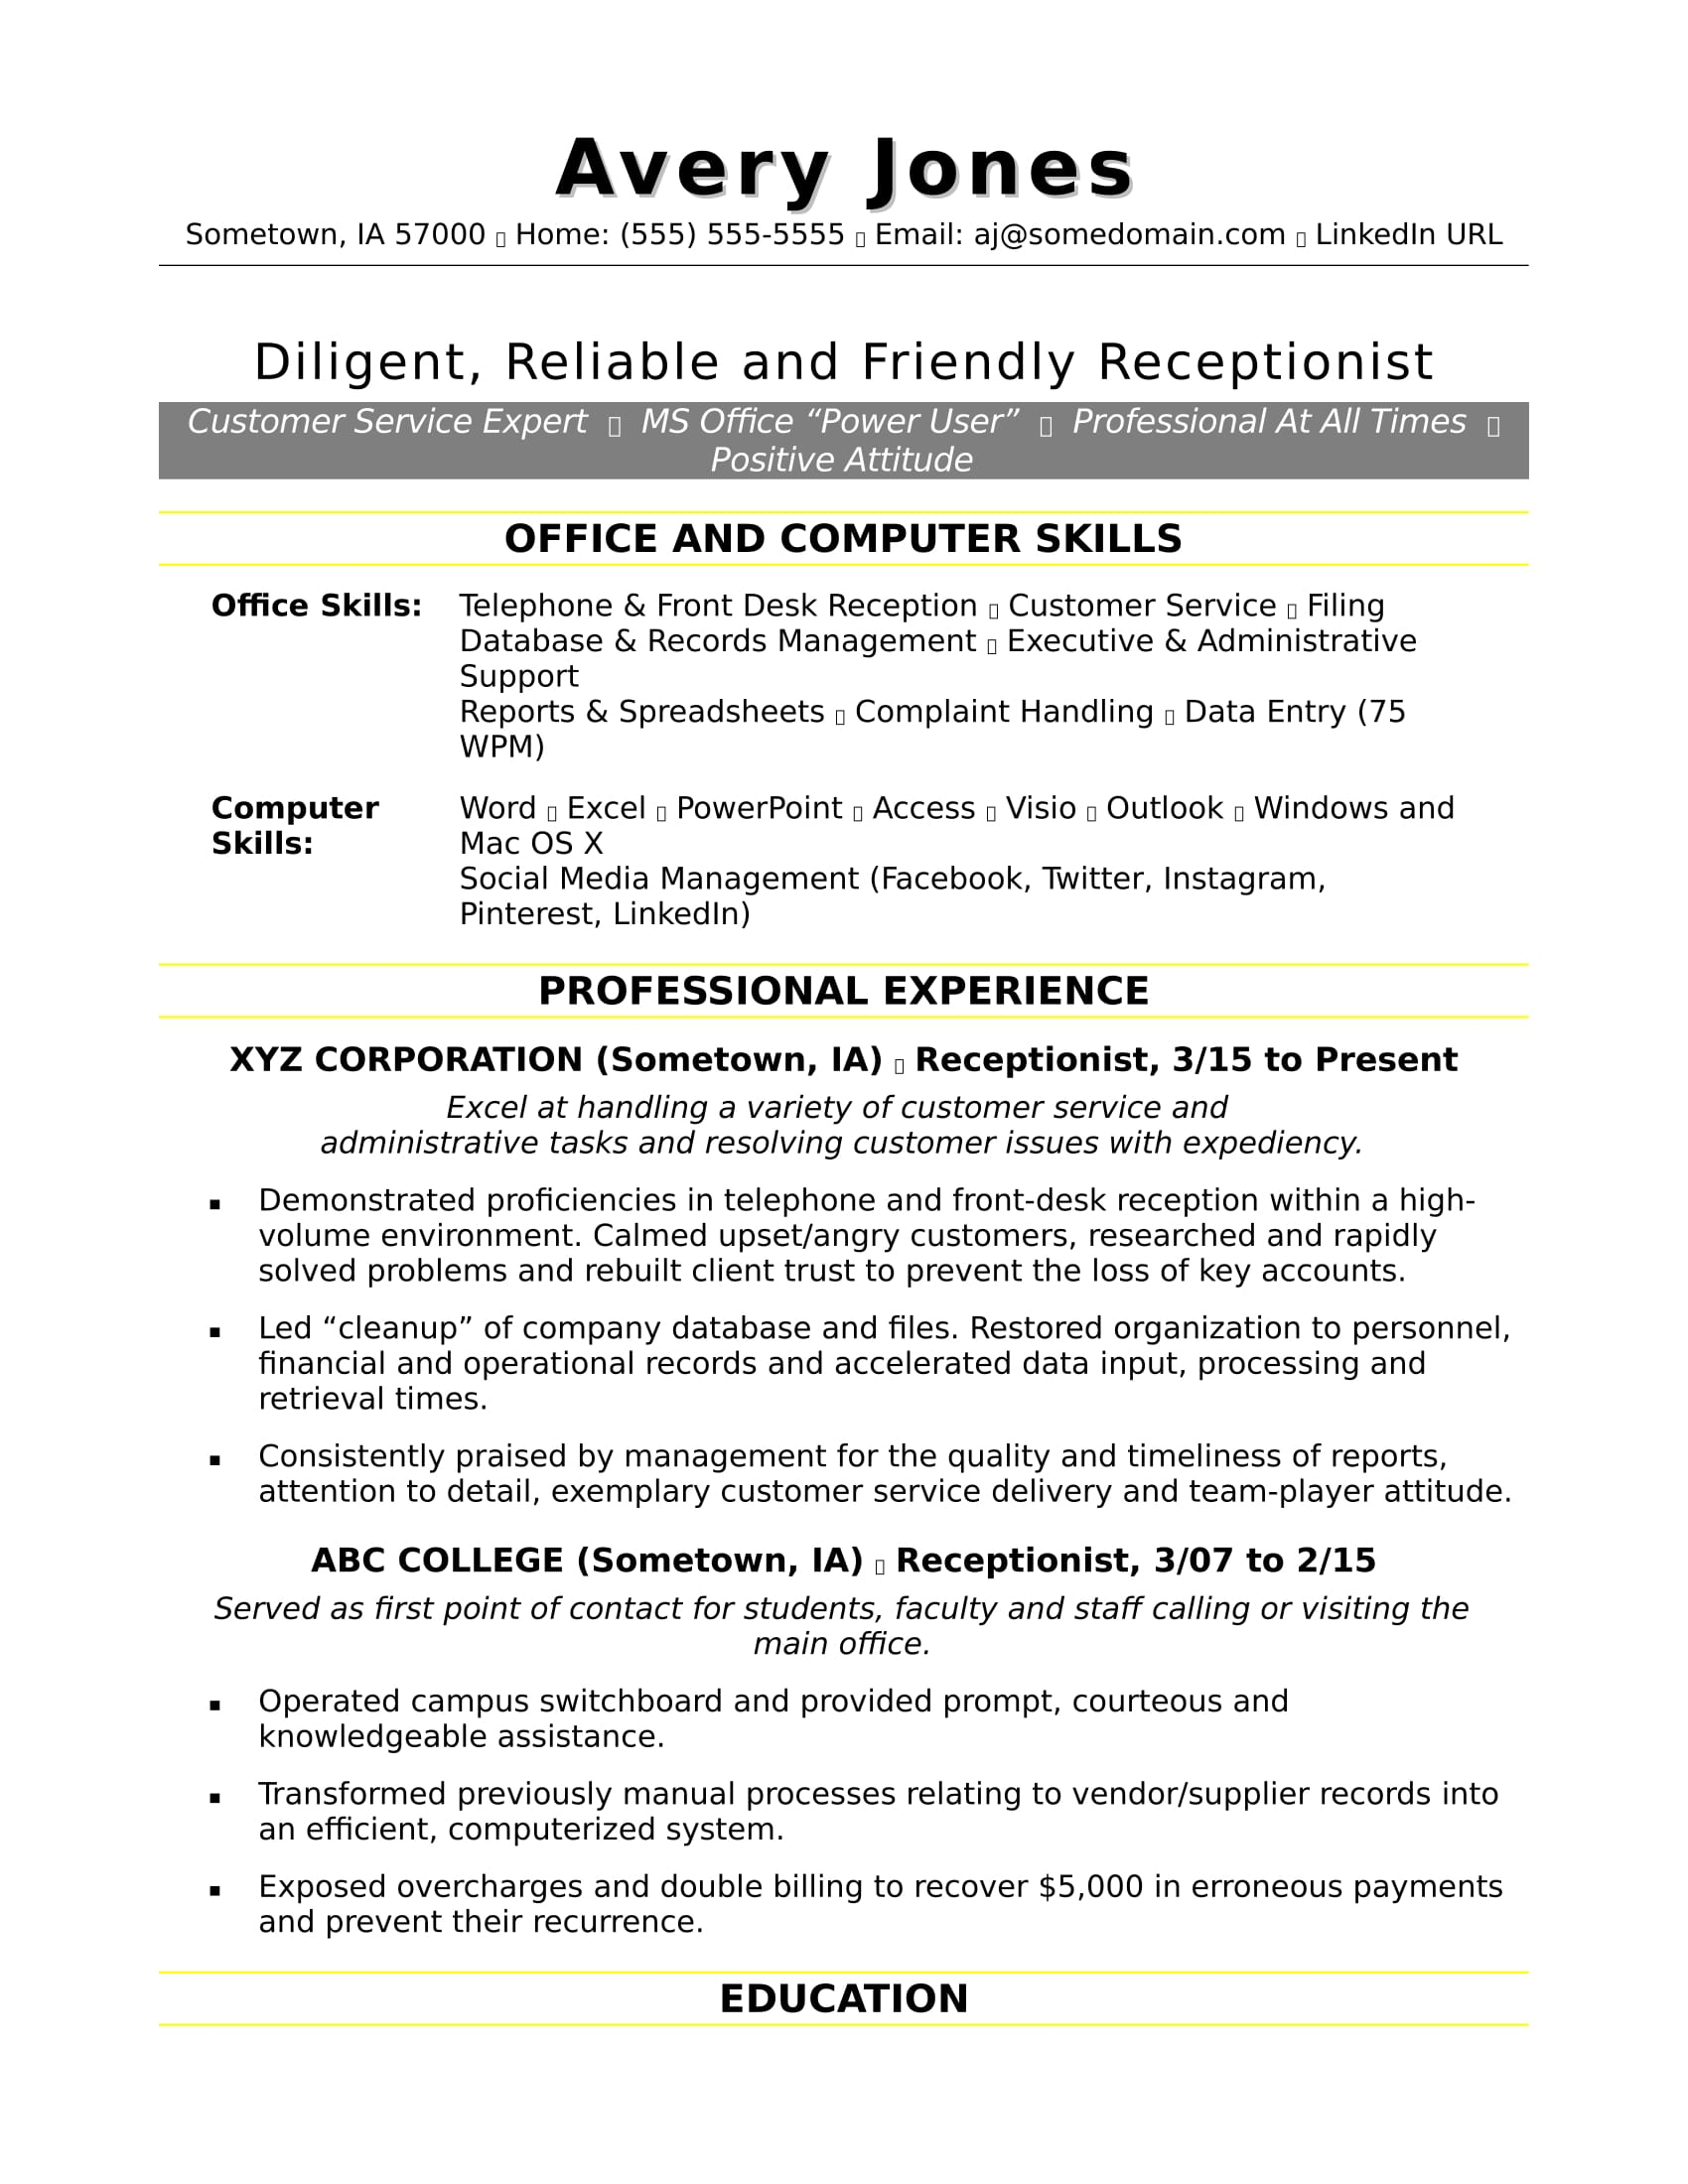 Receptionist resume sample monster sample resume for a receptionist thecheapjerseys Gallery